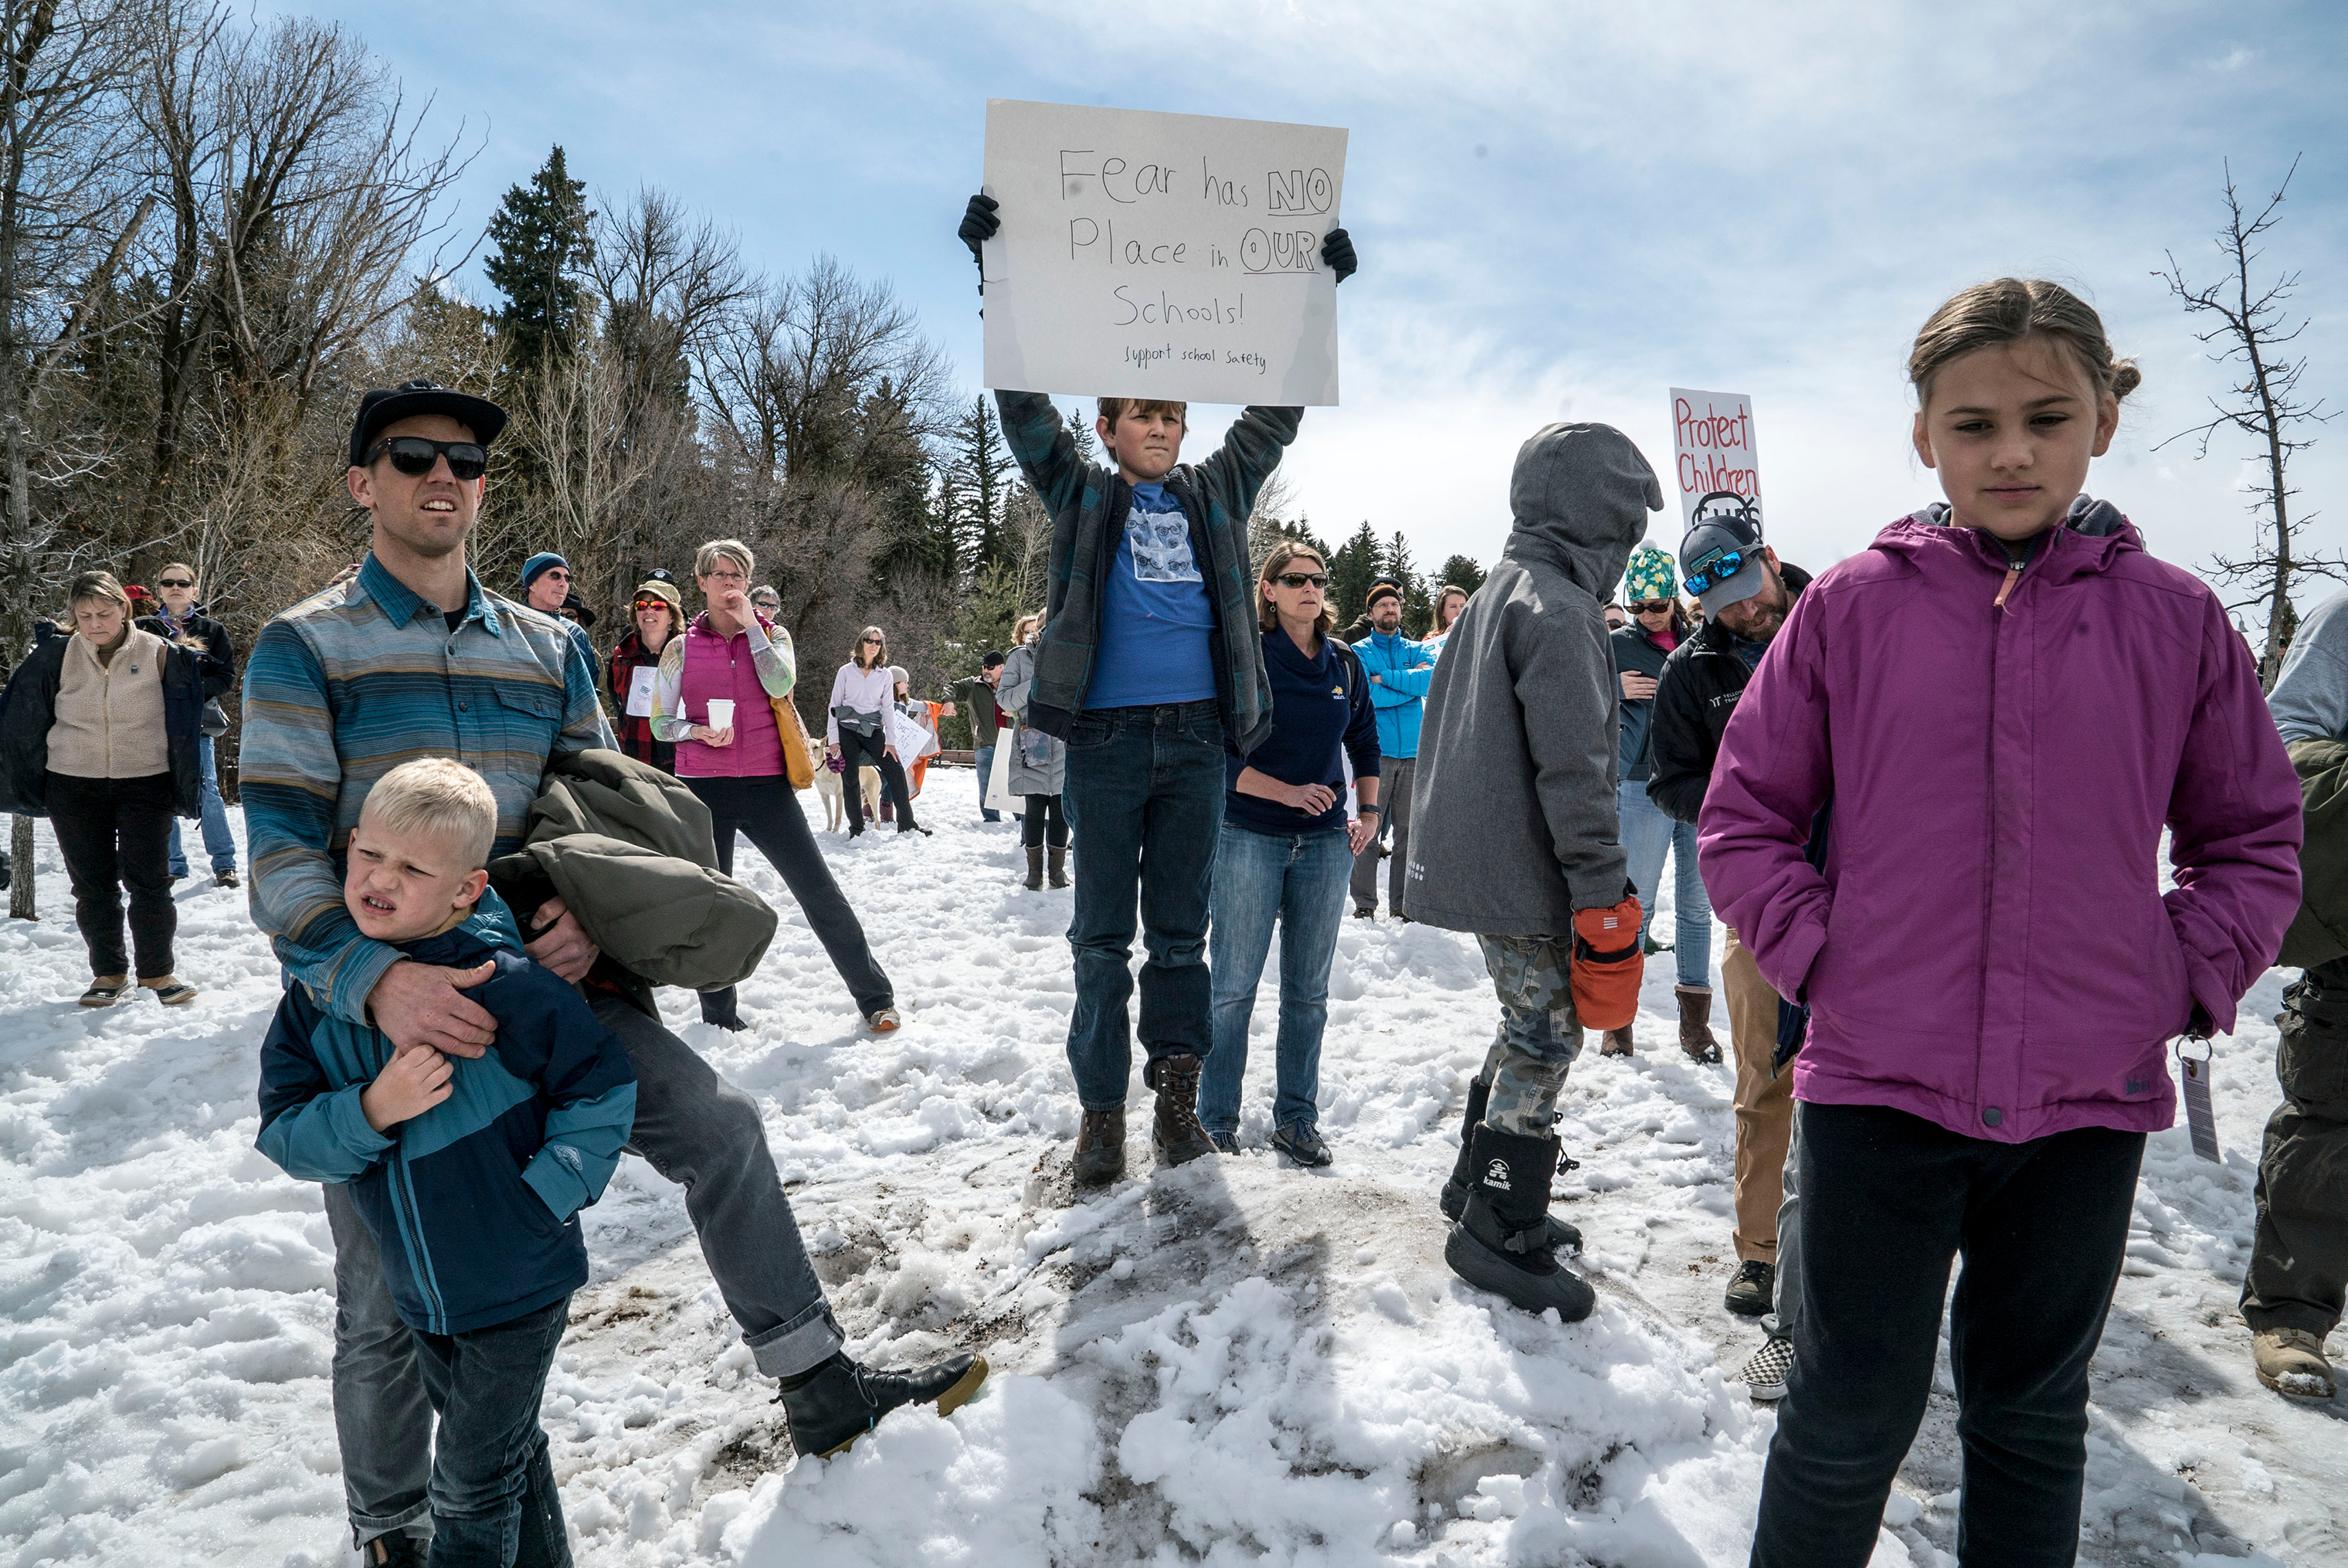 The march in Bozeman, Montana, began at the Gallatin County Courthouse and went to the lawn of the Bozeman Public Library, where speeches were delivered by community members and students.